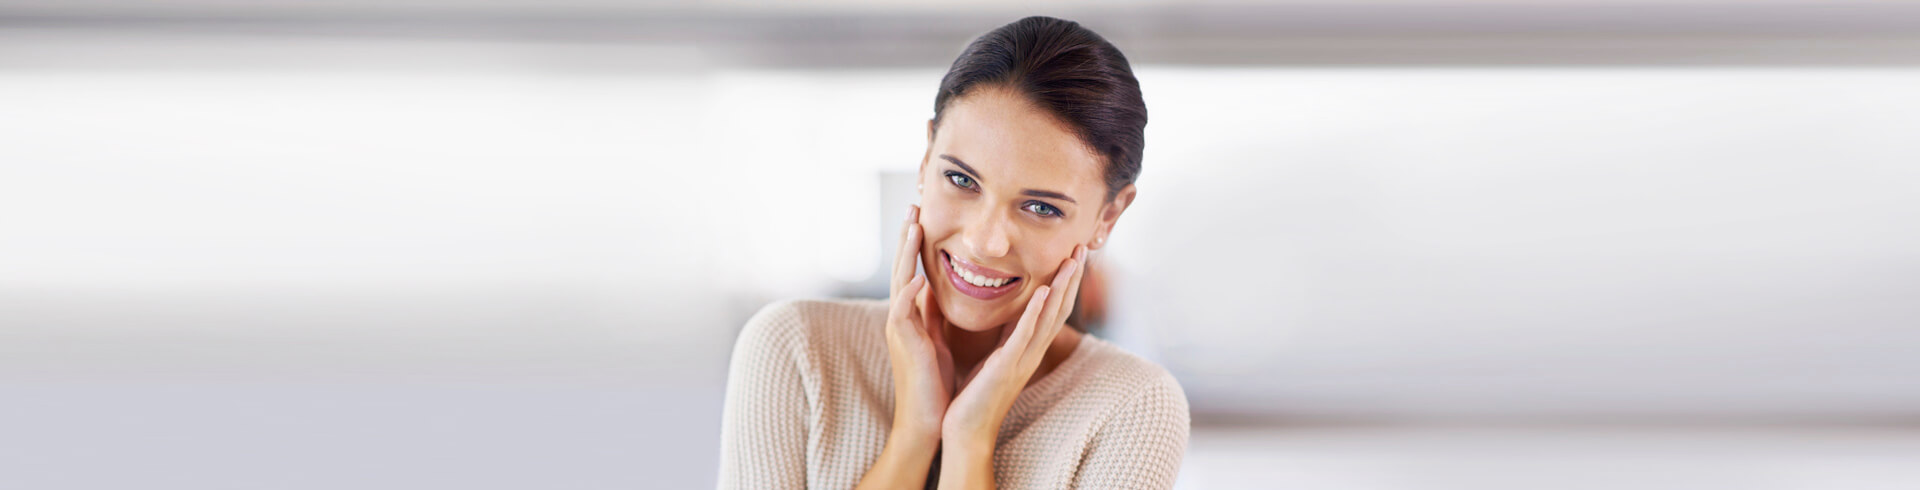 Bite Problems and Dental Implants